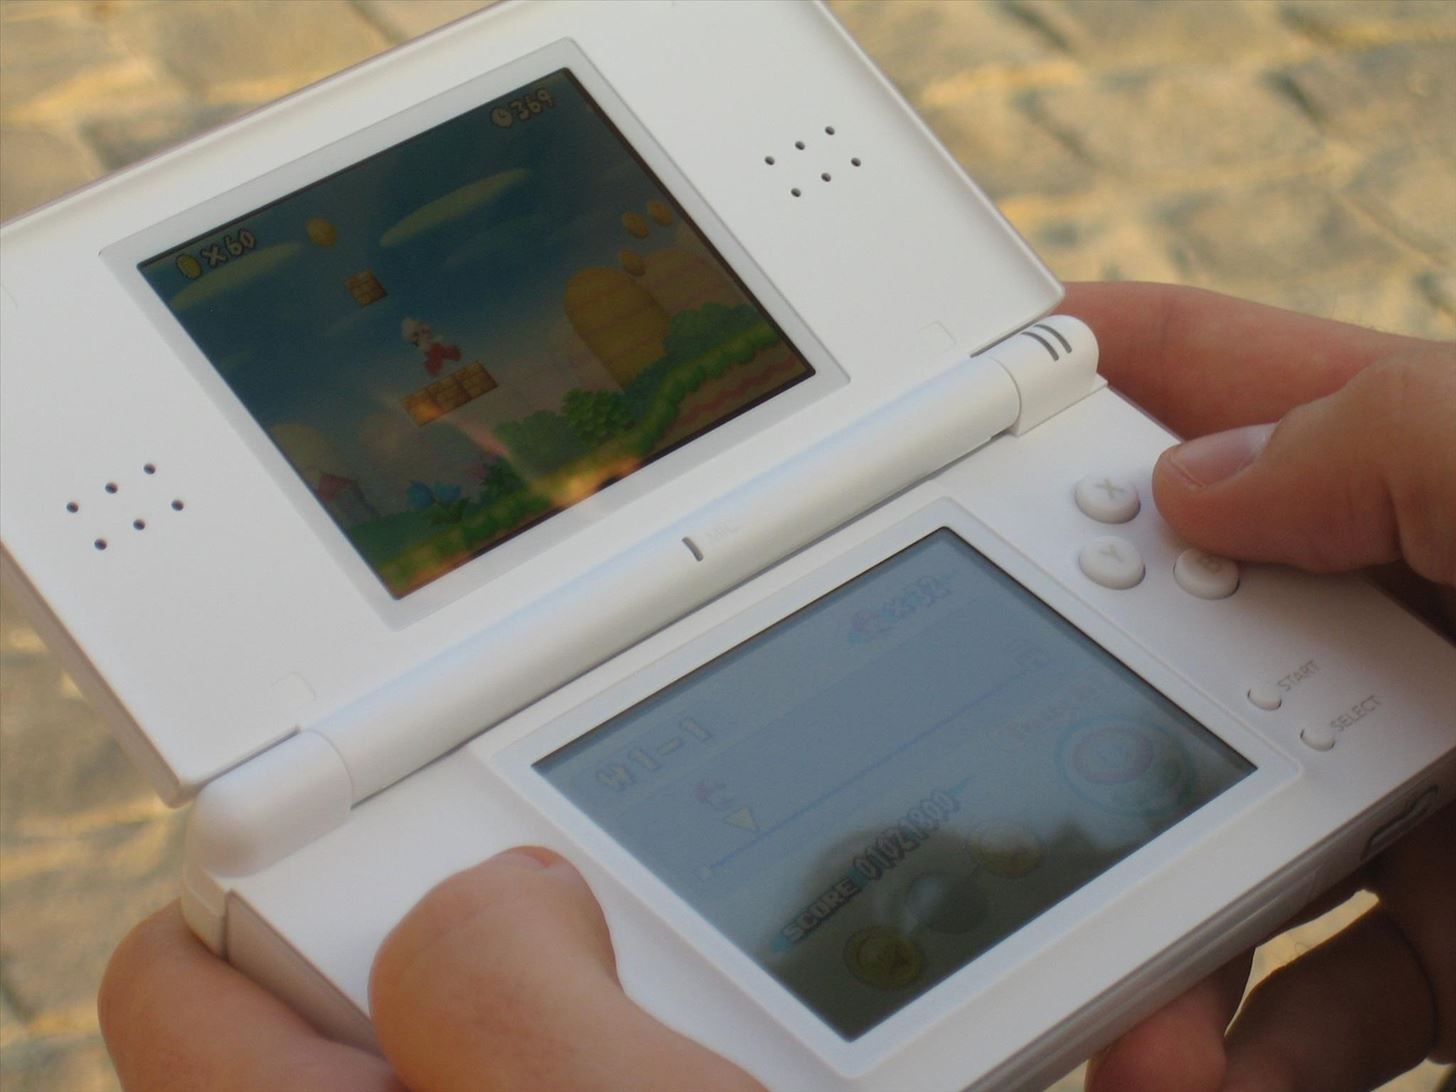 How to Play Any Nintendo DS Game on Your Samsung Galaxy S3